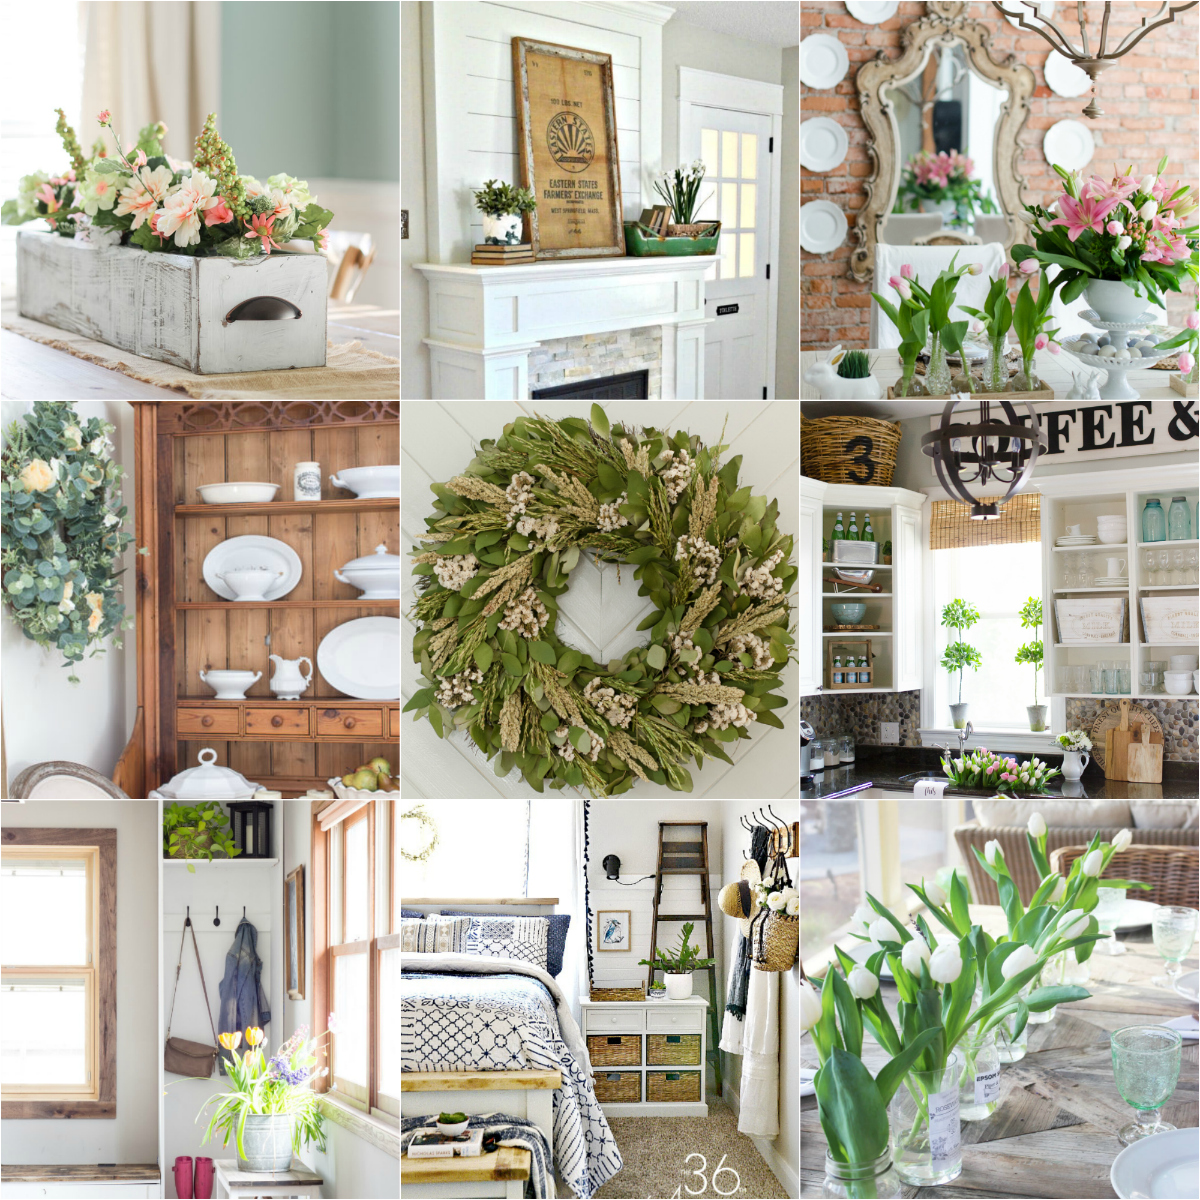 Home Design Ideas: 18 Spring Decor Ideas